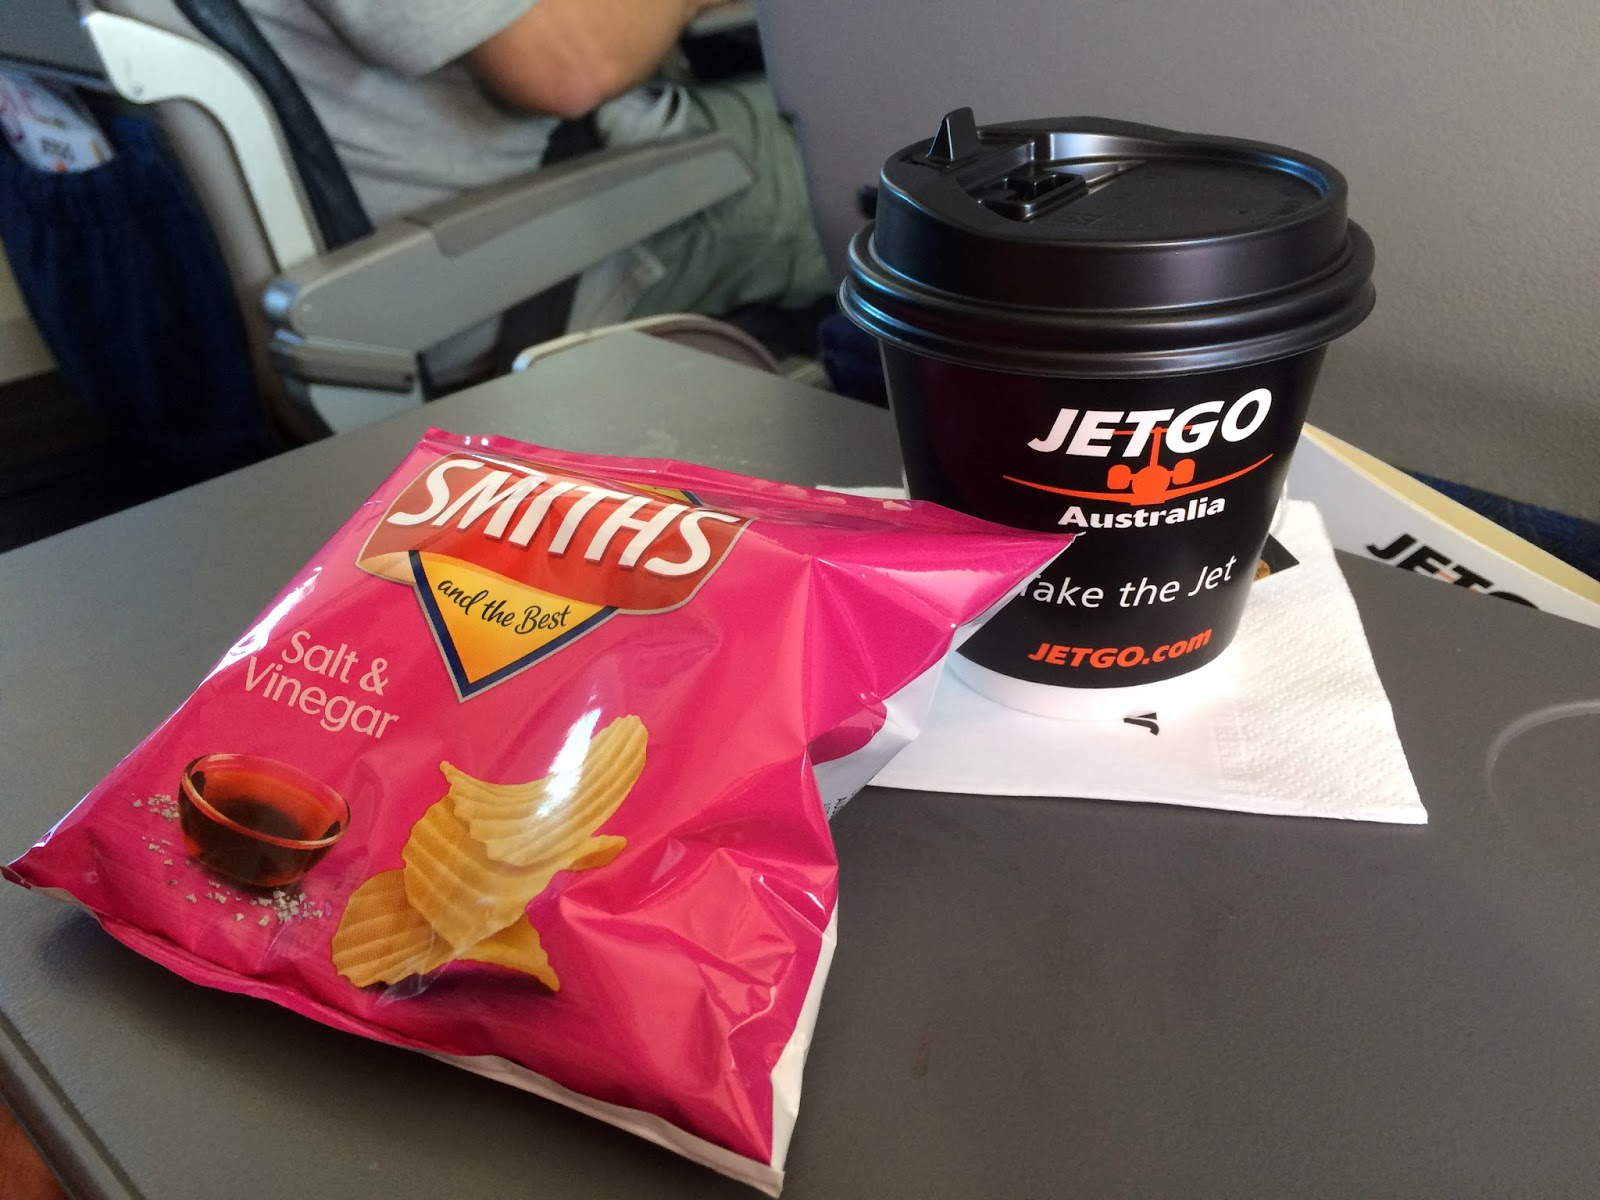 Drinks and Snacks Complimentary on JETGO Australia